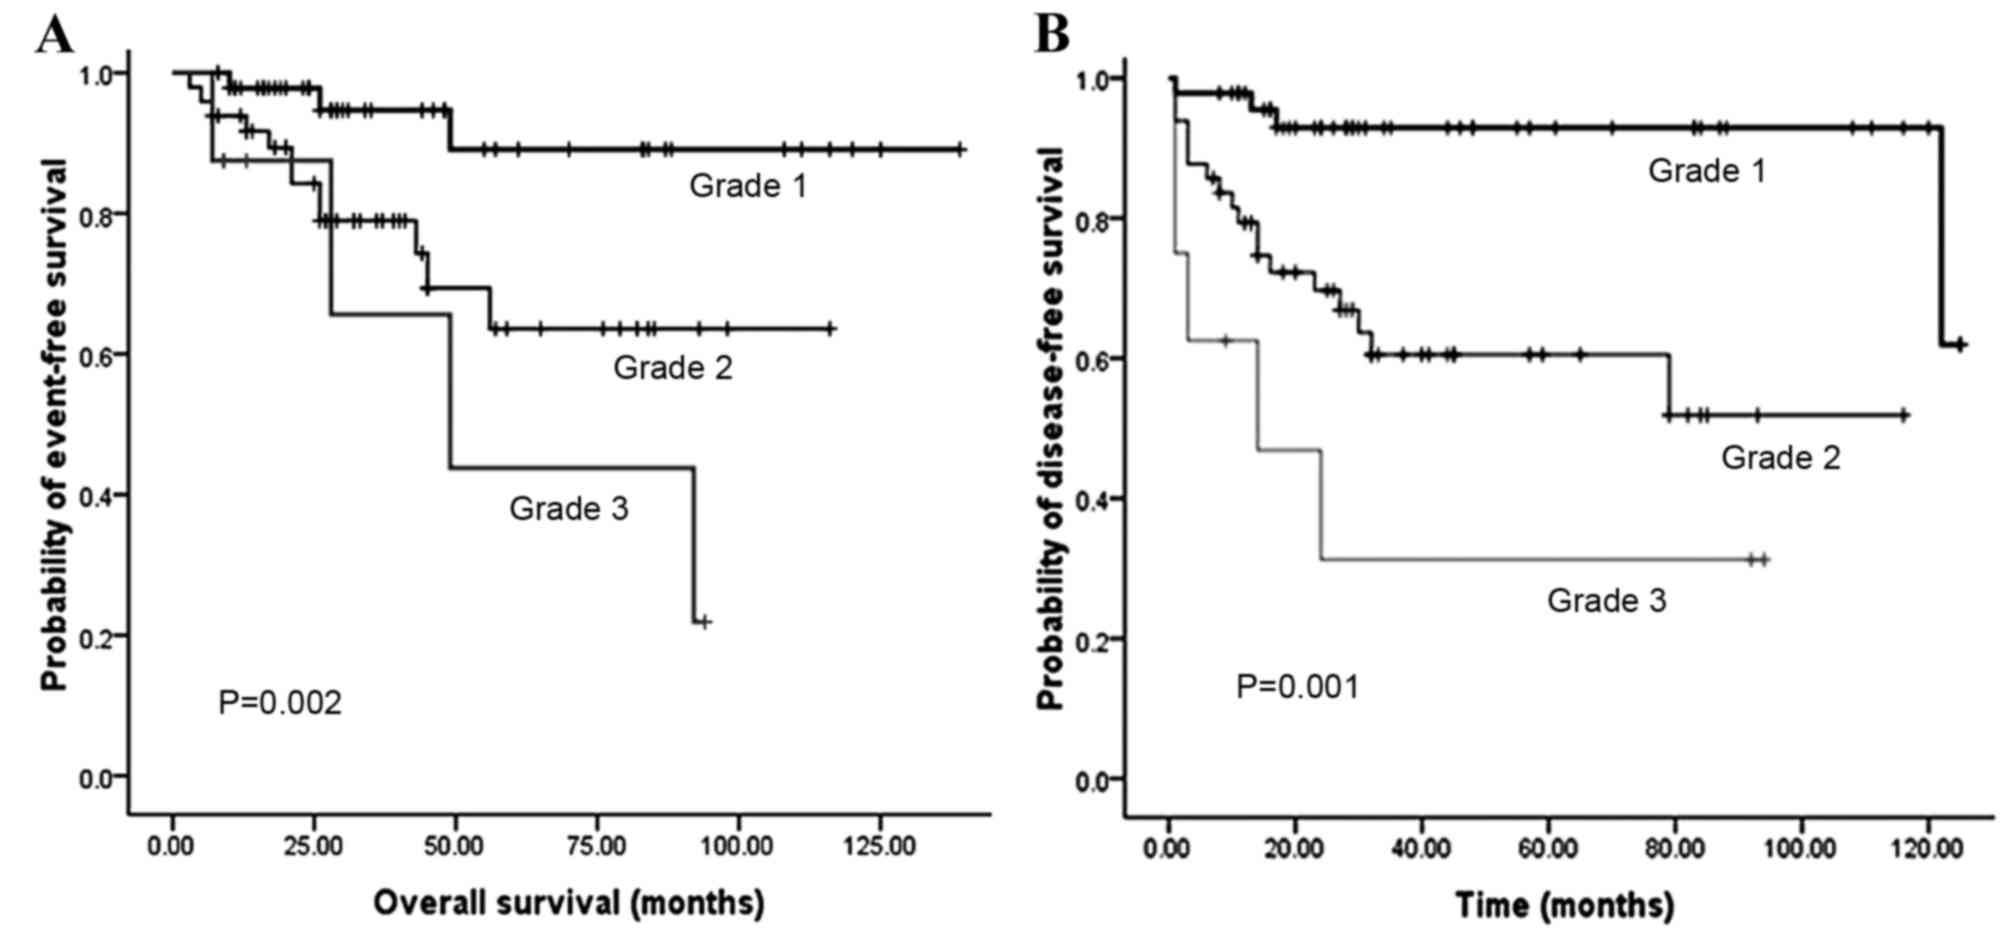 endocrine cancer pancreas prognosis hpv high risk pool